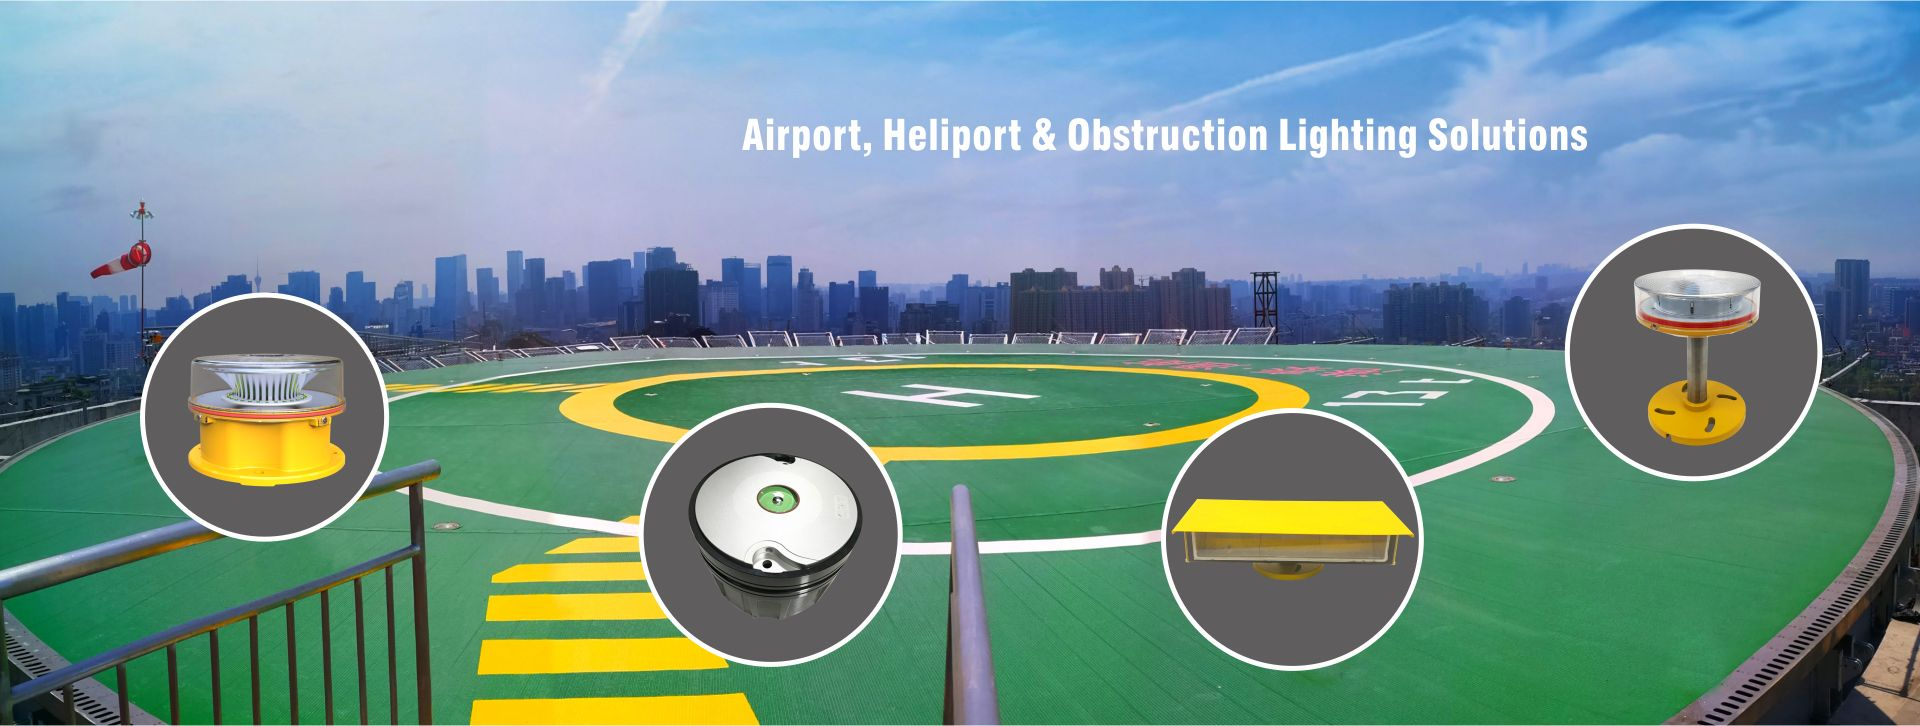 helipad lighting